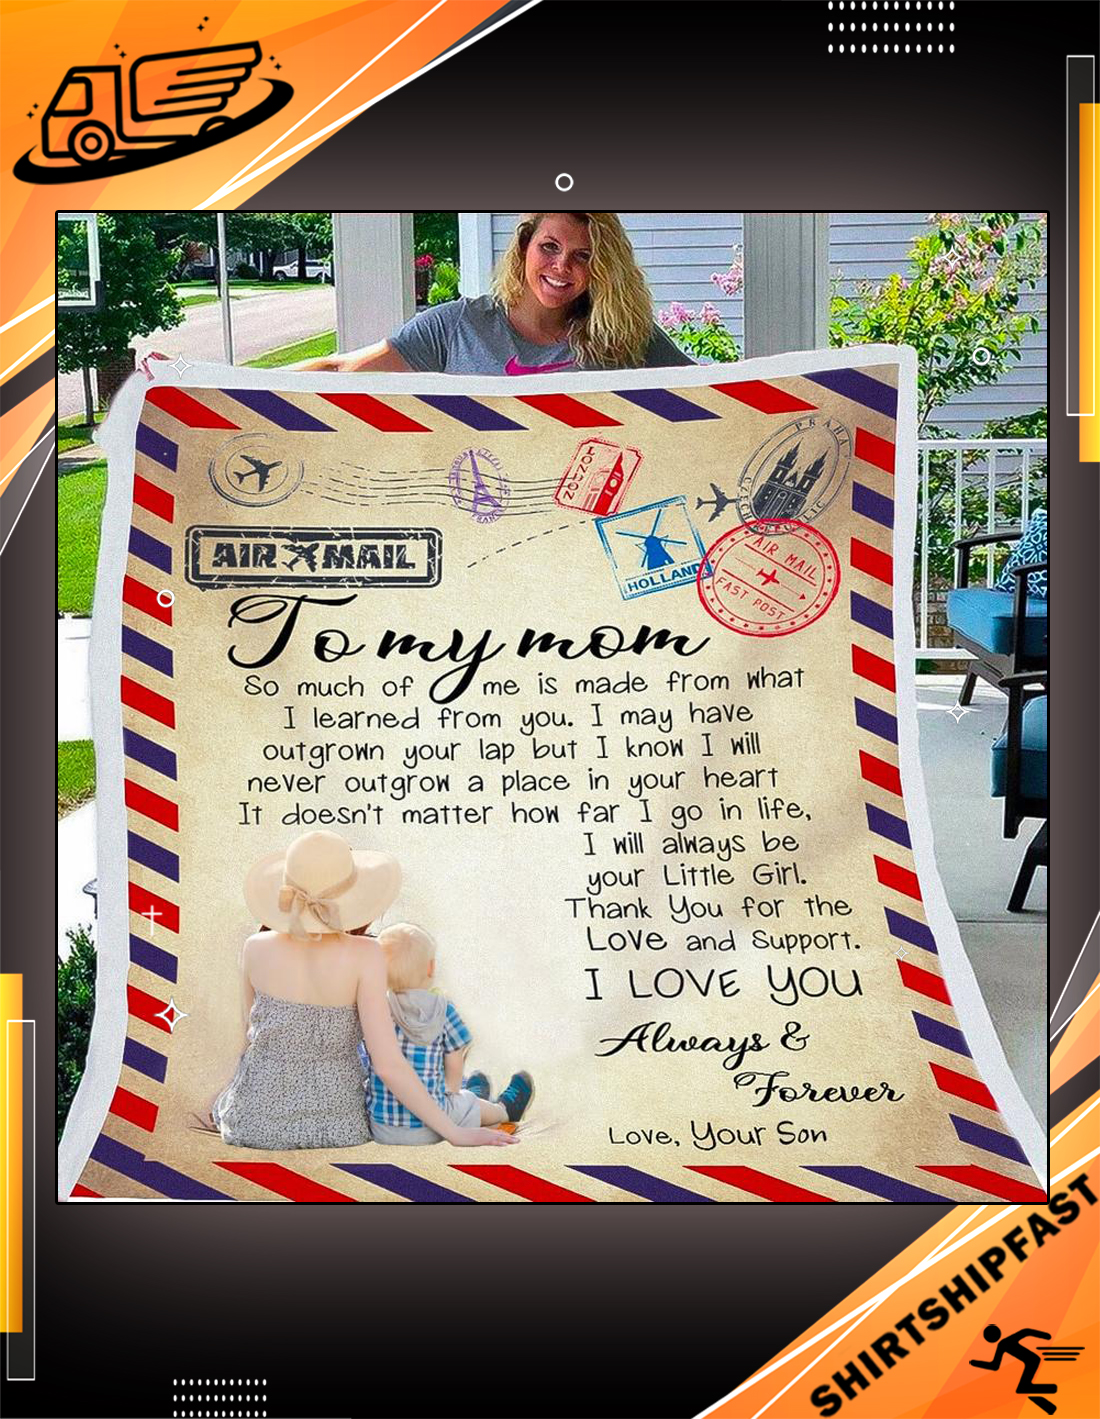 Airmail To my mom so much of me is made from what I learned from you blanket - Picture 3